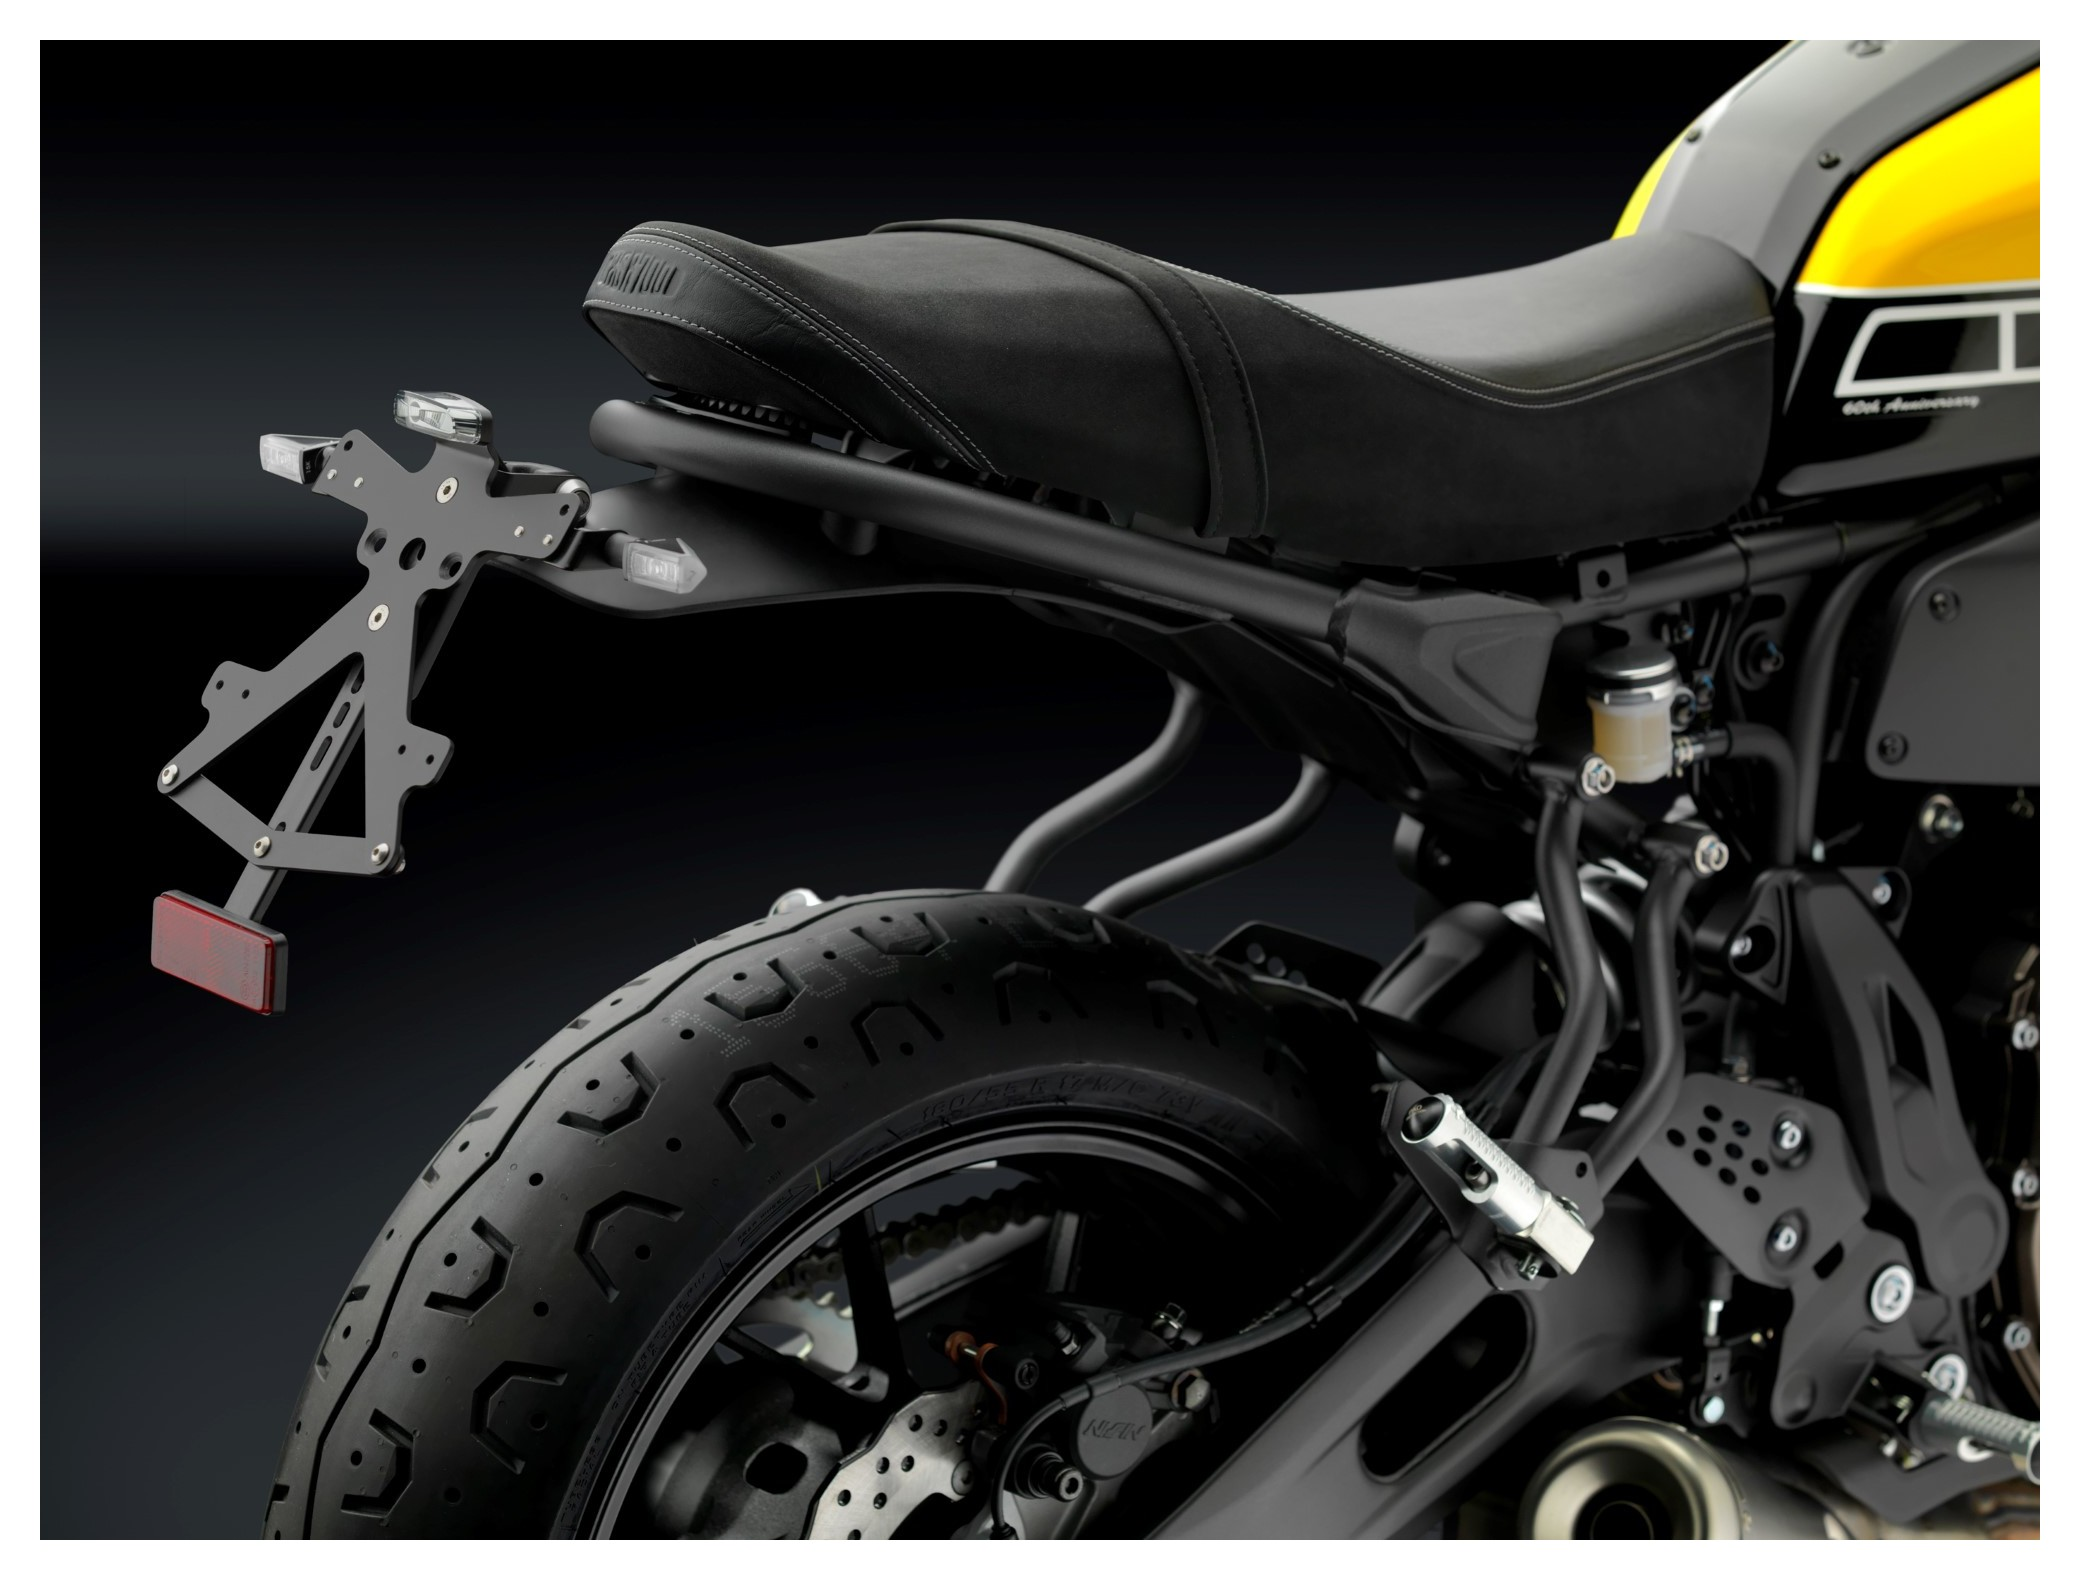 Color : Black XIAOFANG Fit for Yamaha XSR700 2015 2016 2017 2018 2020 2019 Tail Tidy Fender Eliminator Kit Licence Support de Plaque Support XSR 700 2015-2020